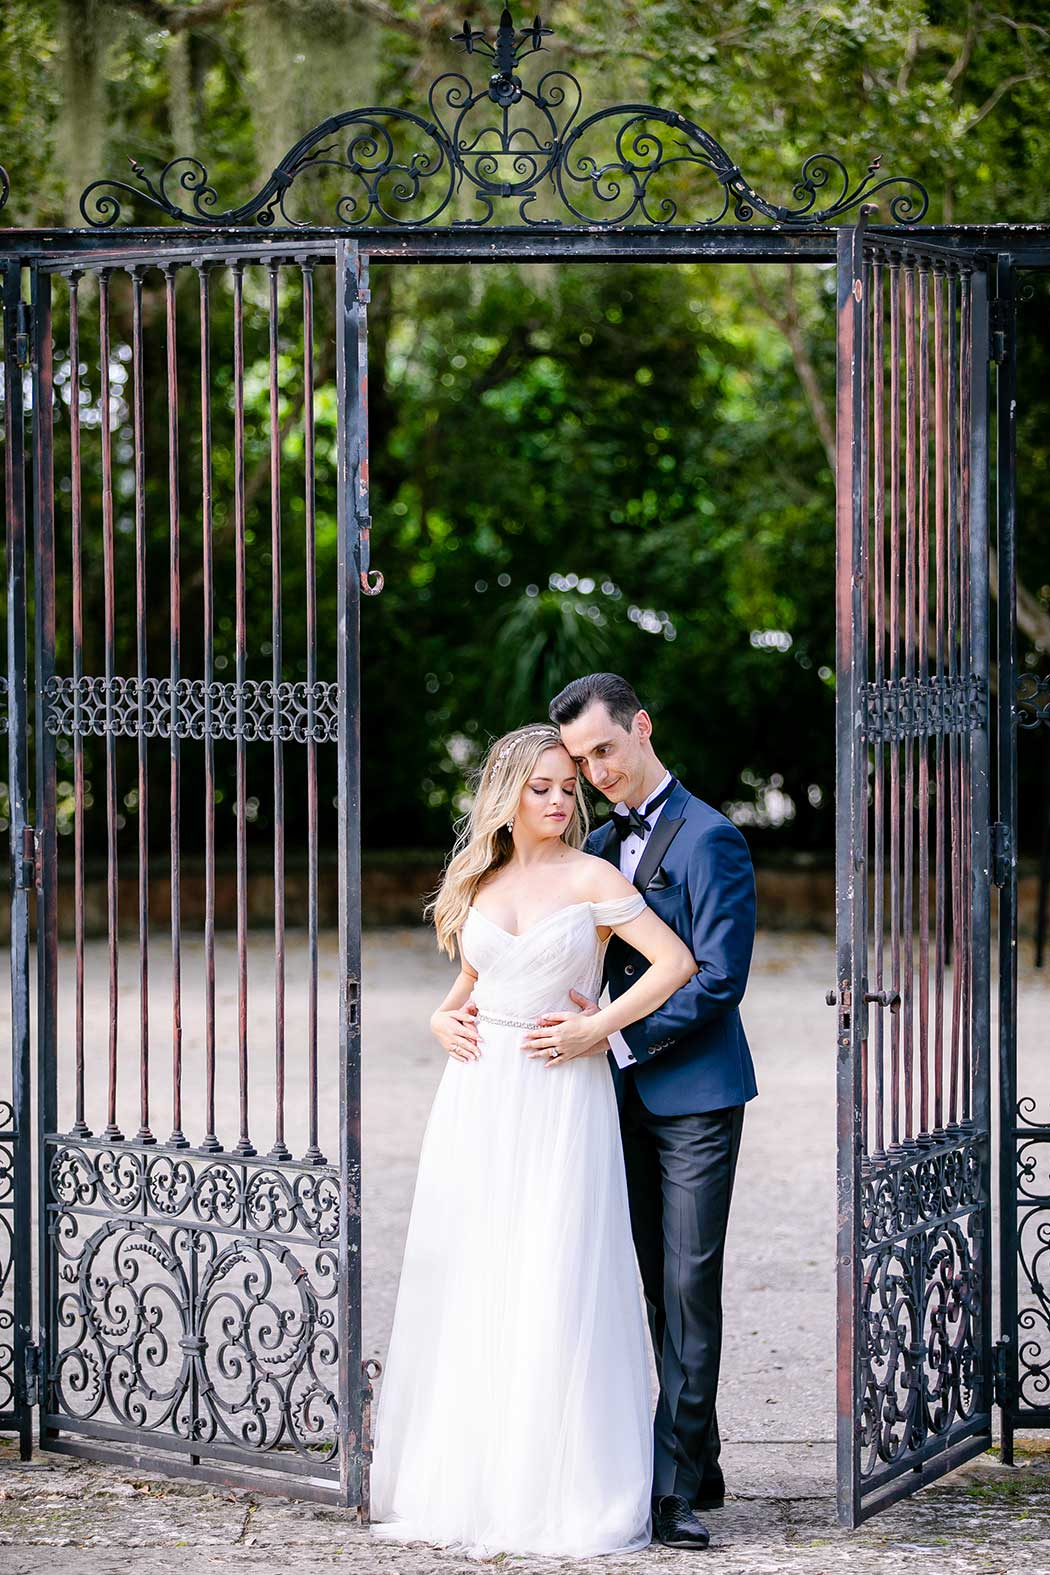 vizcaya museum and gardens engagement photography | engagement photos vizcaya | couples photos vizcaya | vizcaya couples photoshoot